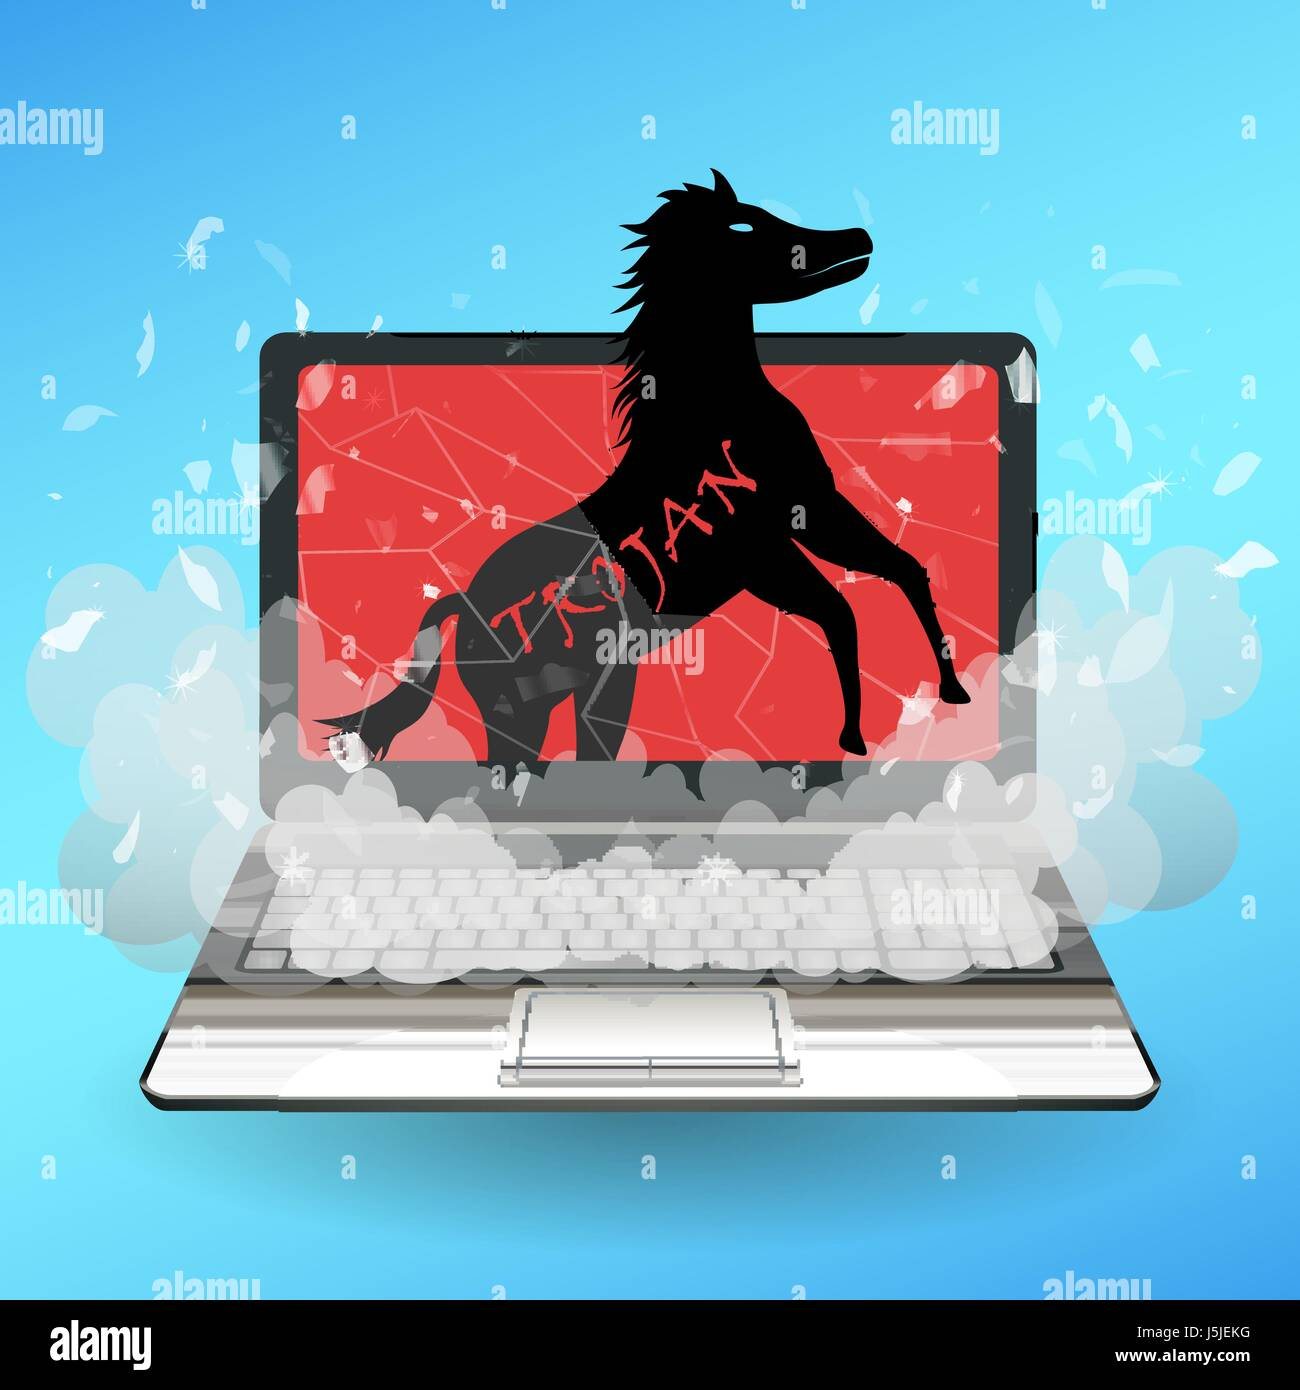 Trojan Horse Virus Computer Destroy Laptop Stock Vector Image Art Alamy